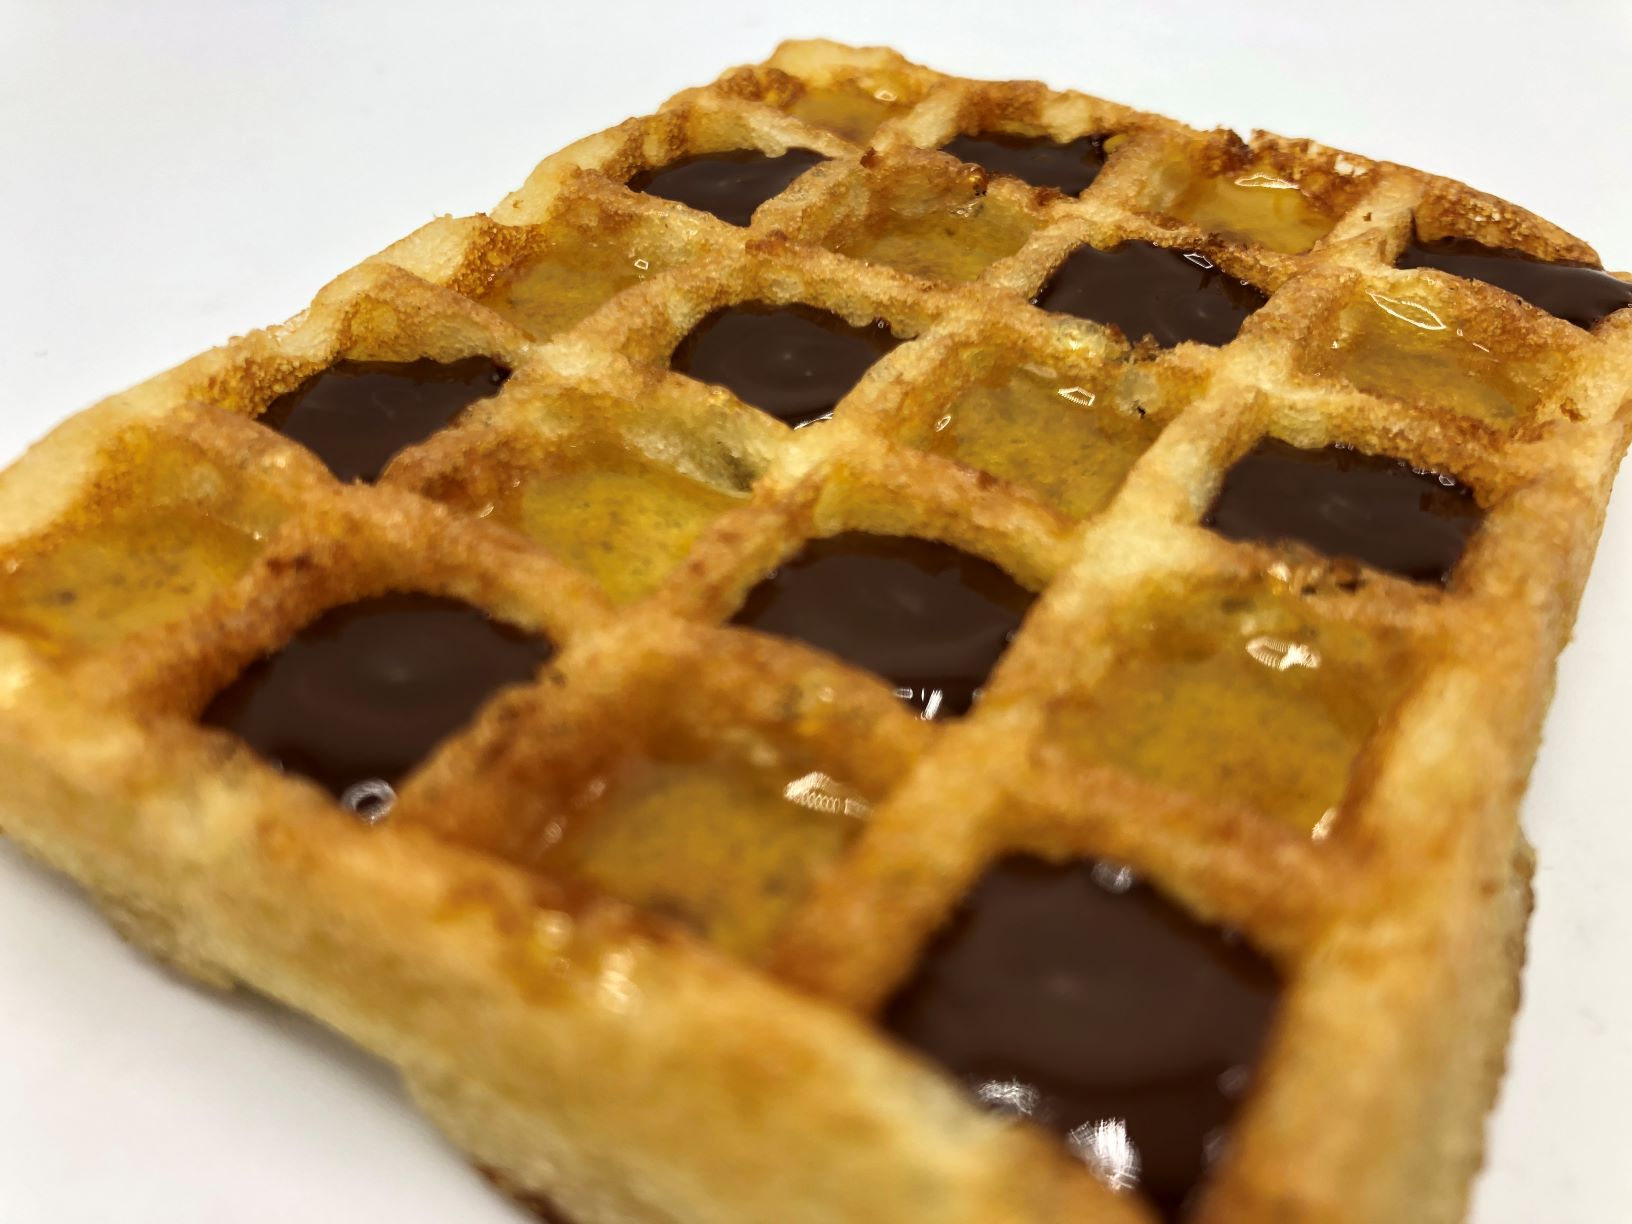 Egg waffle filled with marmalade and chocolade by FoodJet chocolate depositor